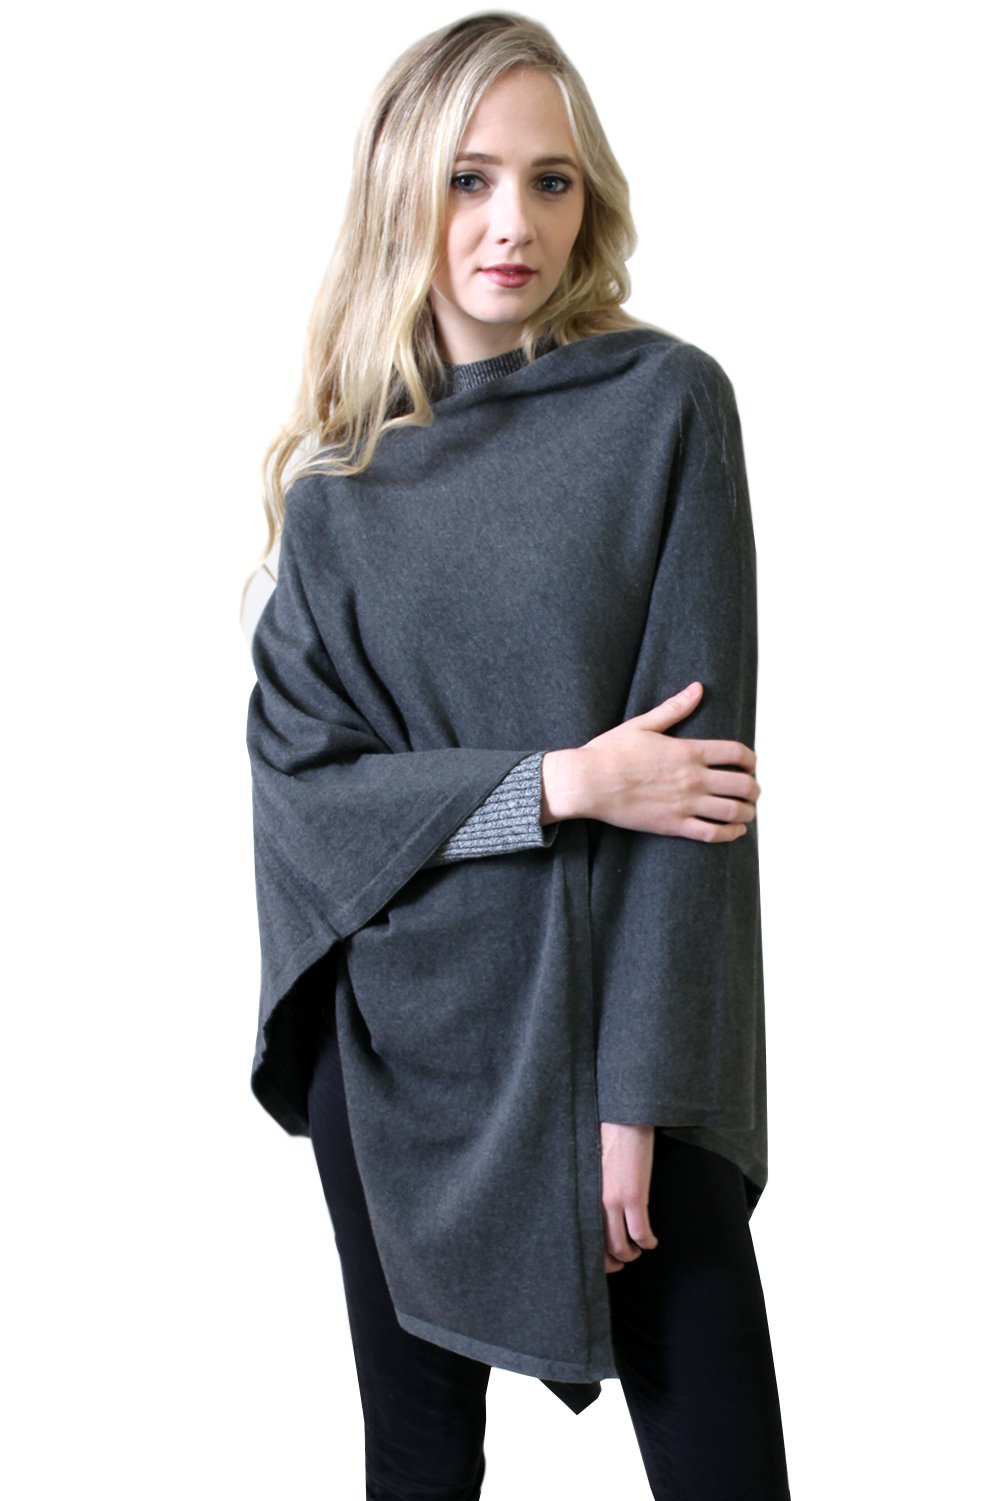 Viverano Pure Organic Cotton Knit 5-Way Poncho Wrap, Cardigan & Sweater (Charcoal)